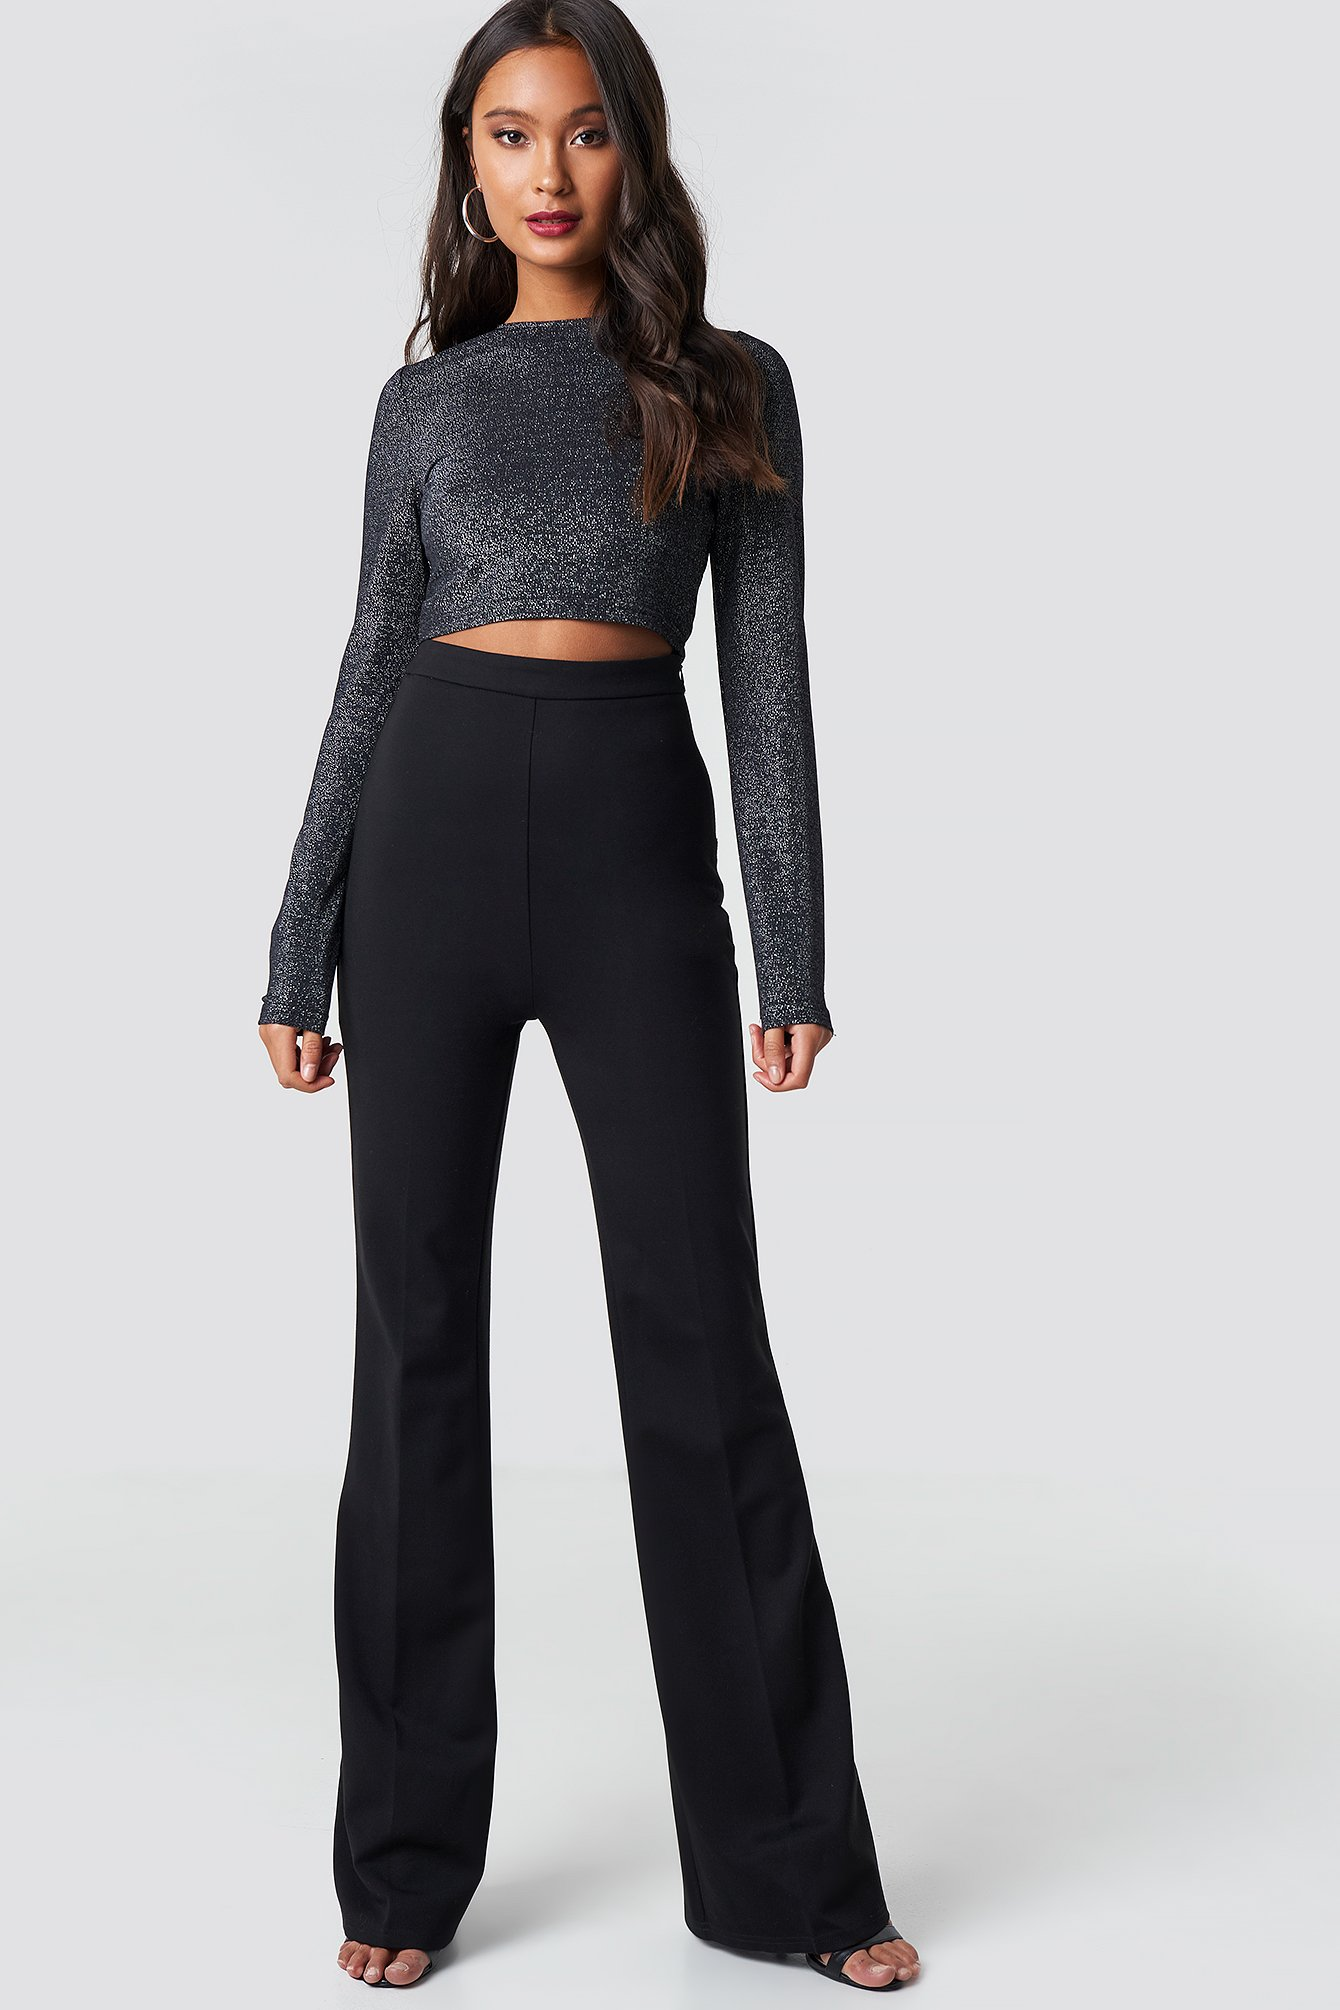 High Waisted Creased Pants Sort by Dilaraxnakd